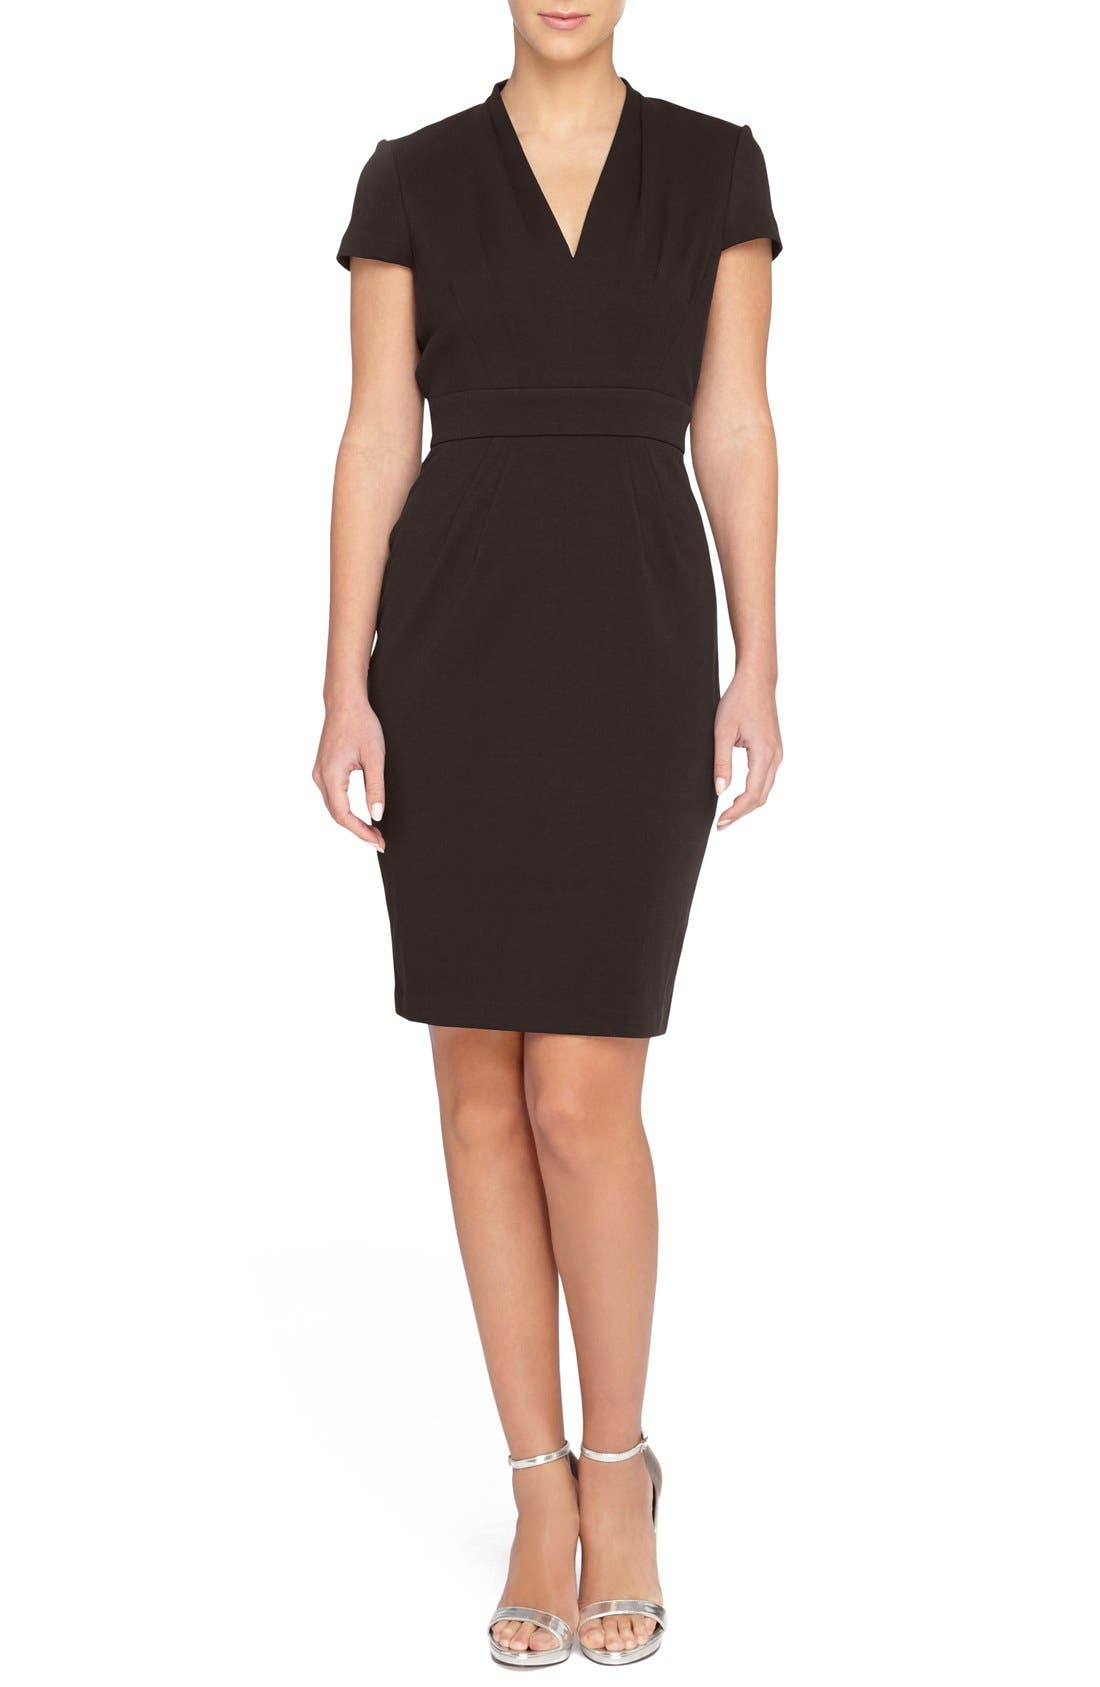 CATHERINE CATHERINE MALANDRINO 'Dale' V-Neck Sheath Dress